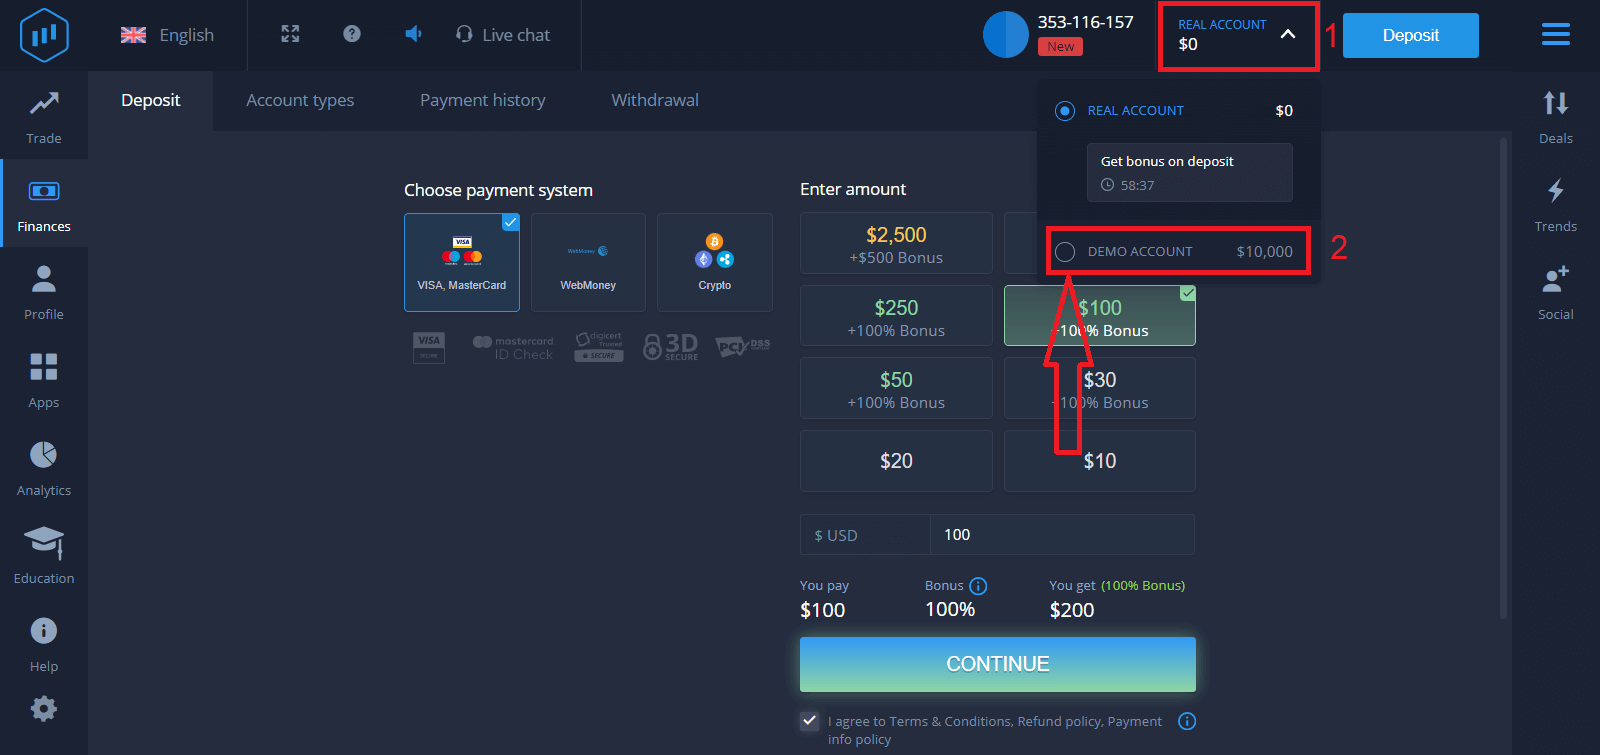 How to Open Account and Withdraw Money at ExpertOption